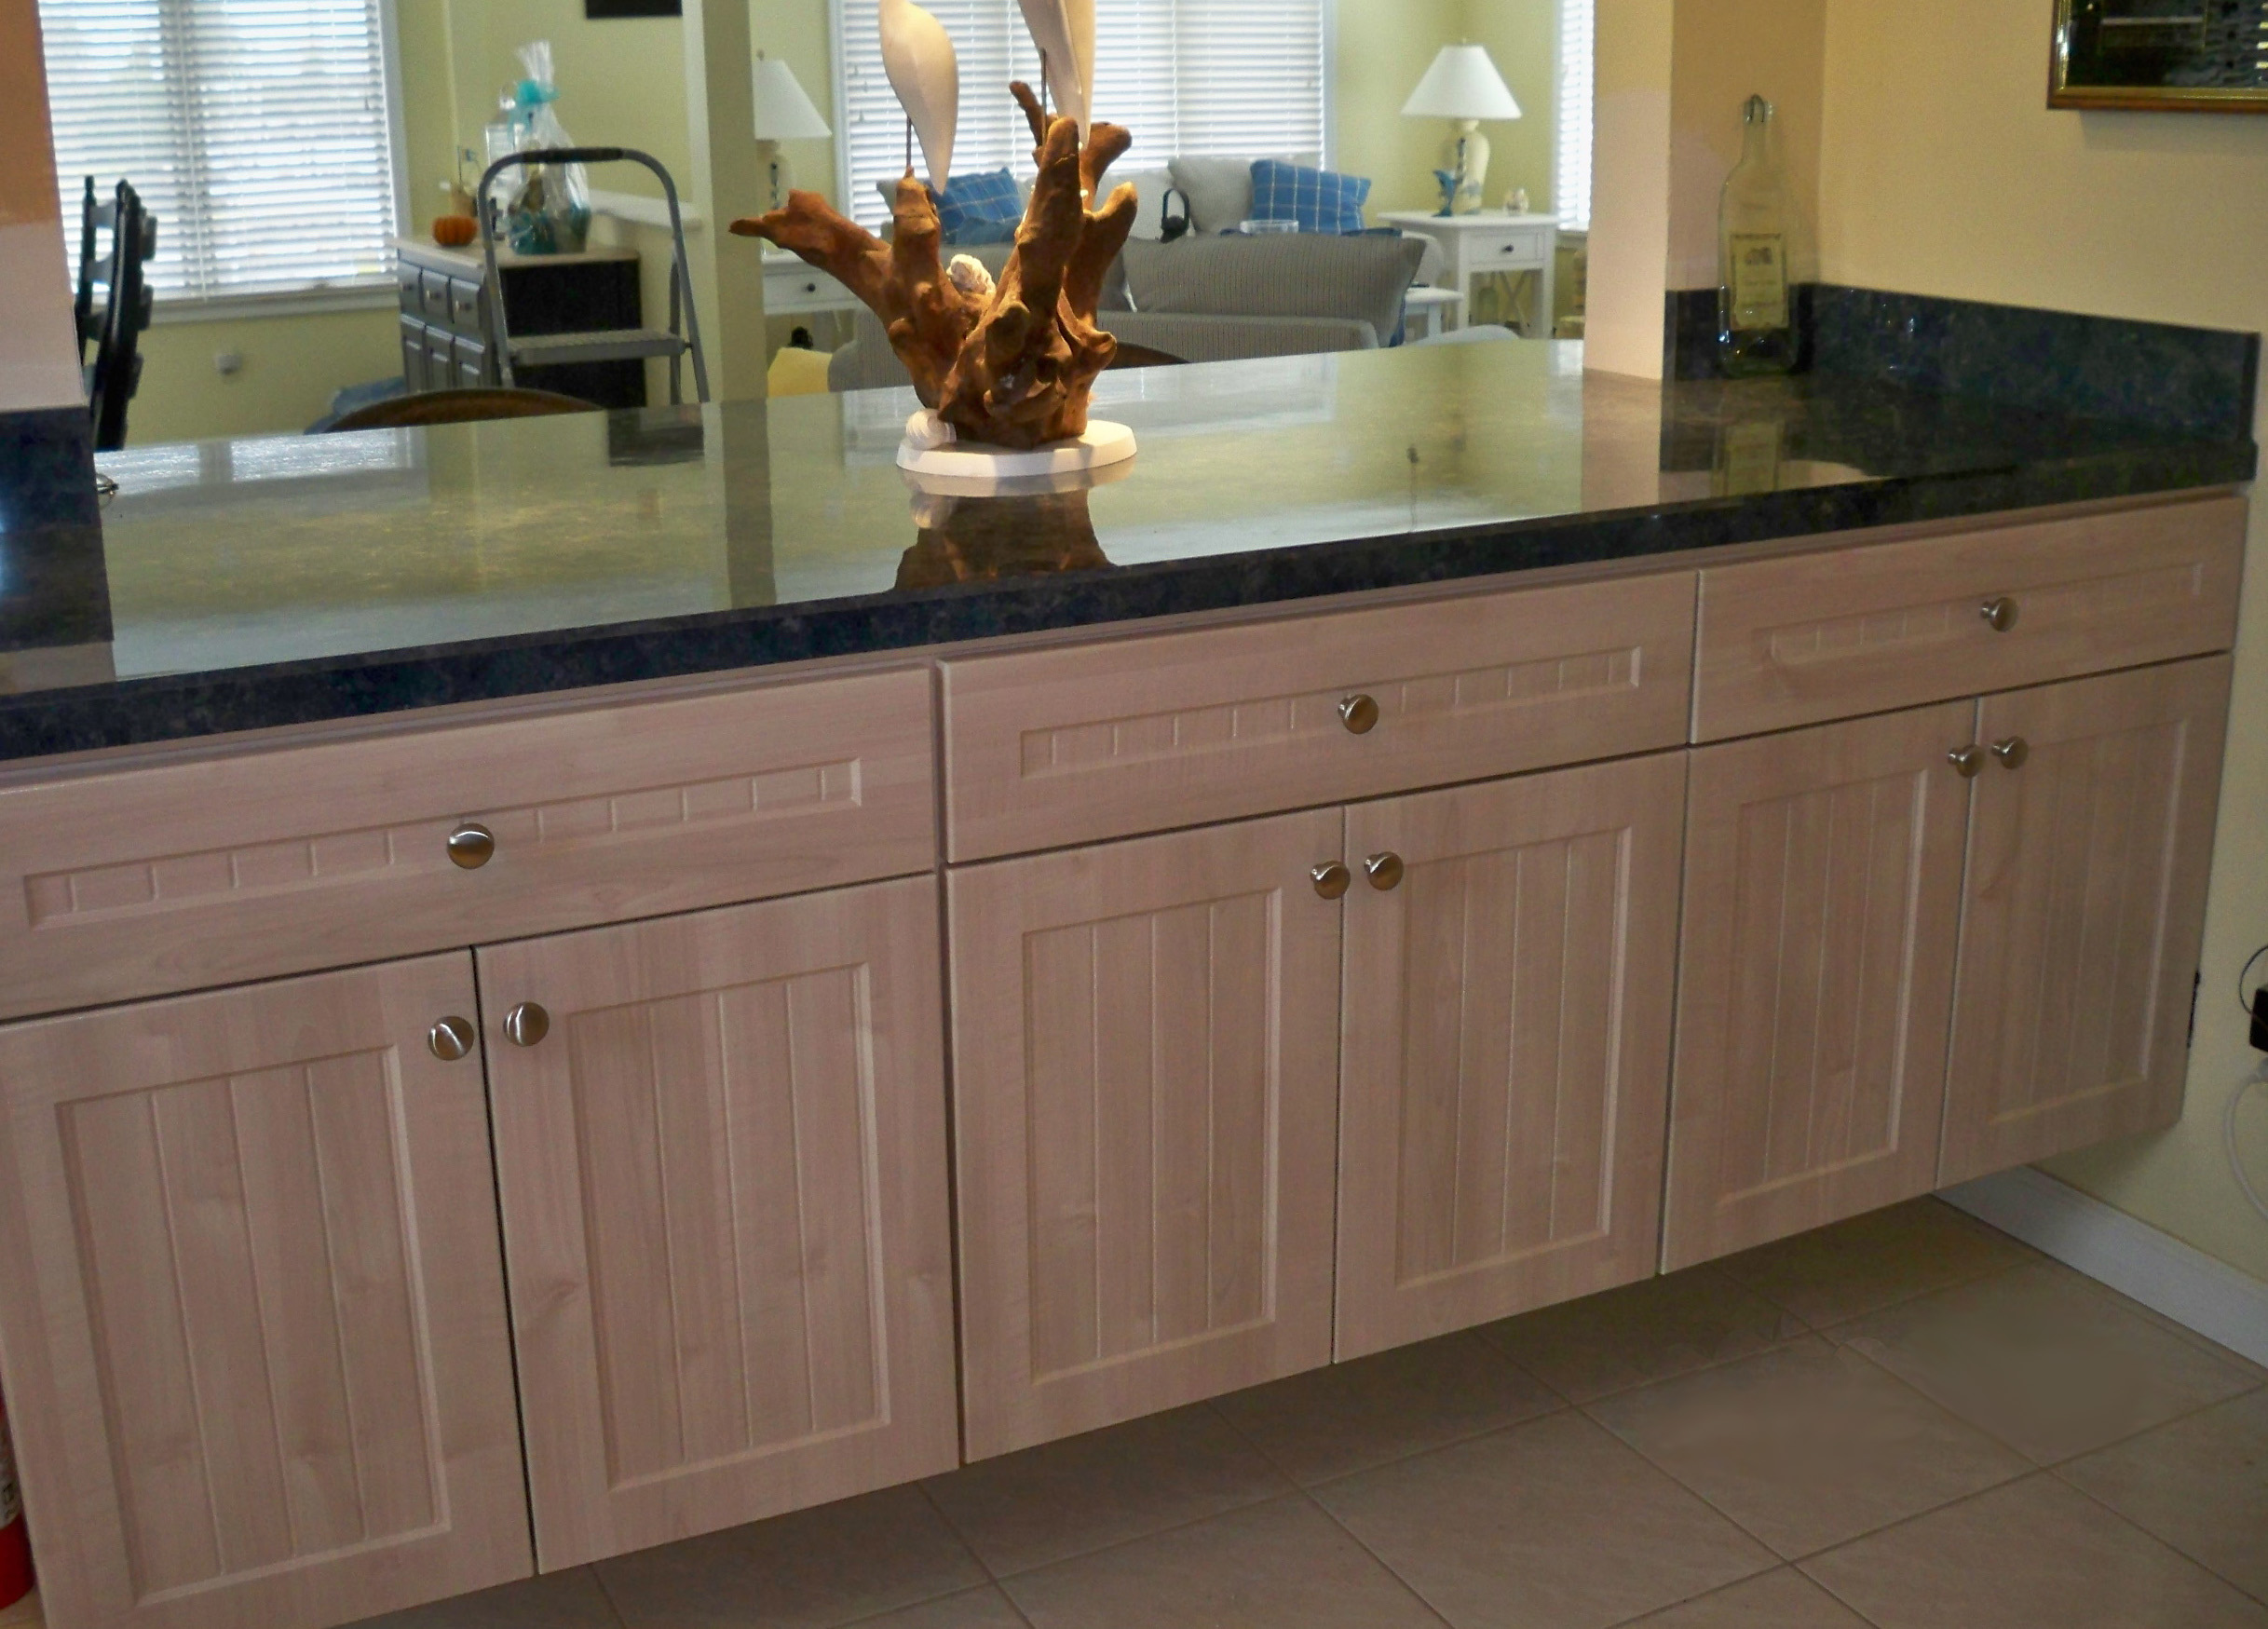 Charmant Kitchen U0026 Bathroom Remodeling, Custom Cabinets U0026 Countertops: Toms River, NJ